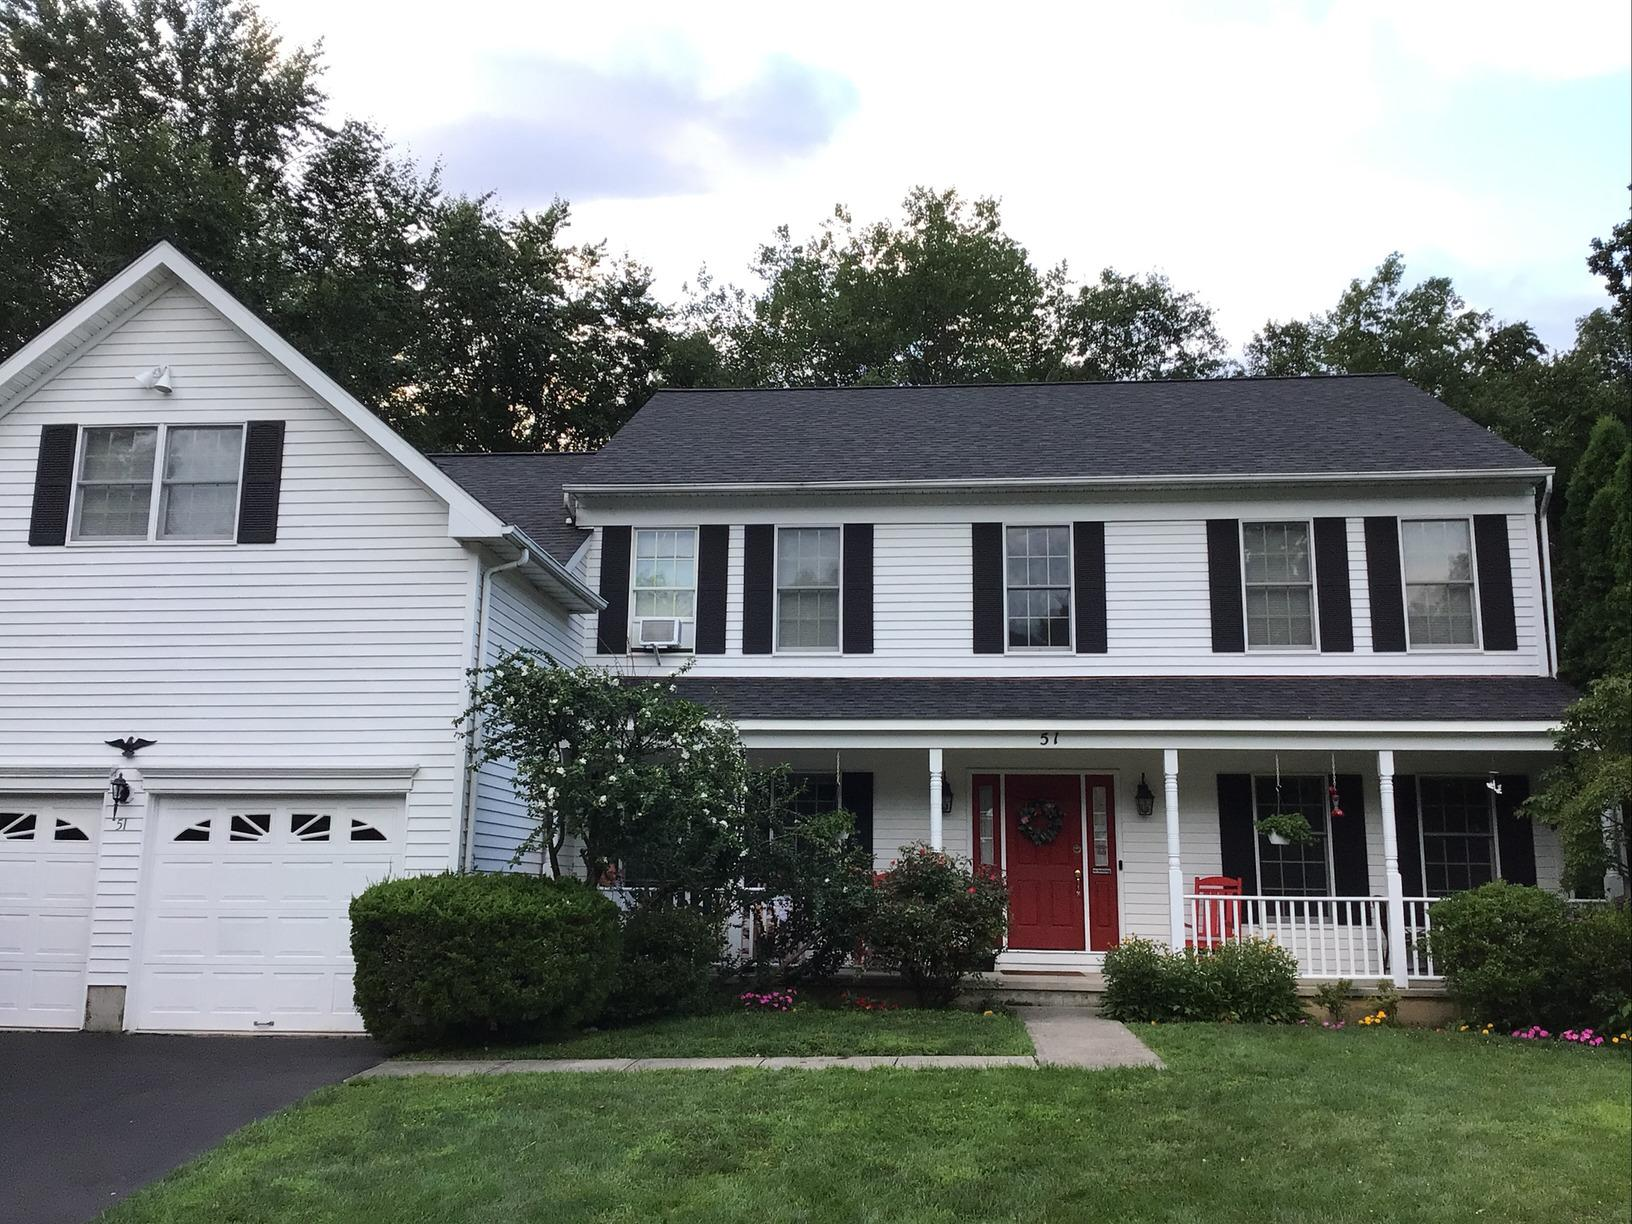 Granite Black Colonial Roof Replacement in White Plains, NY - After Photo